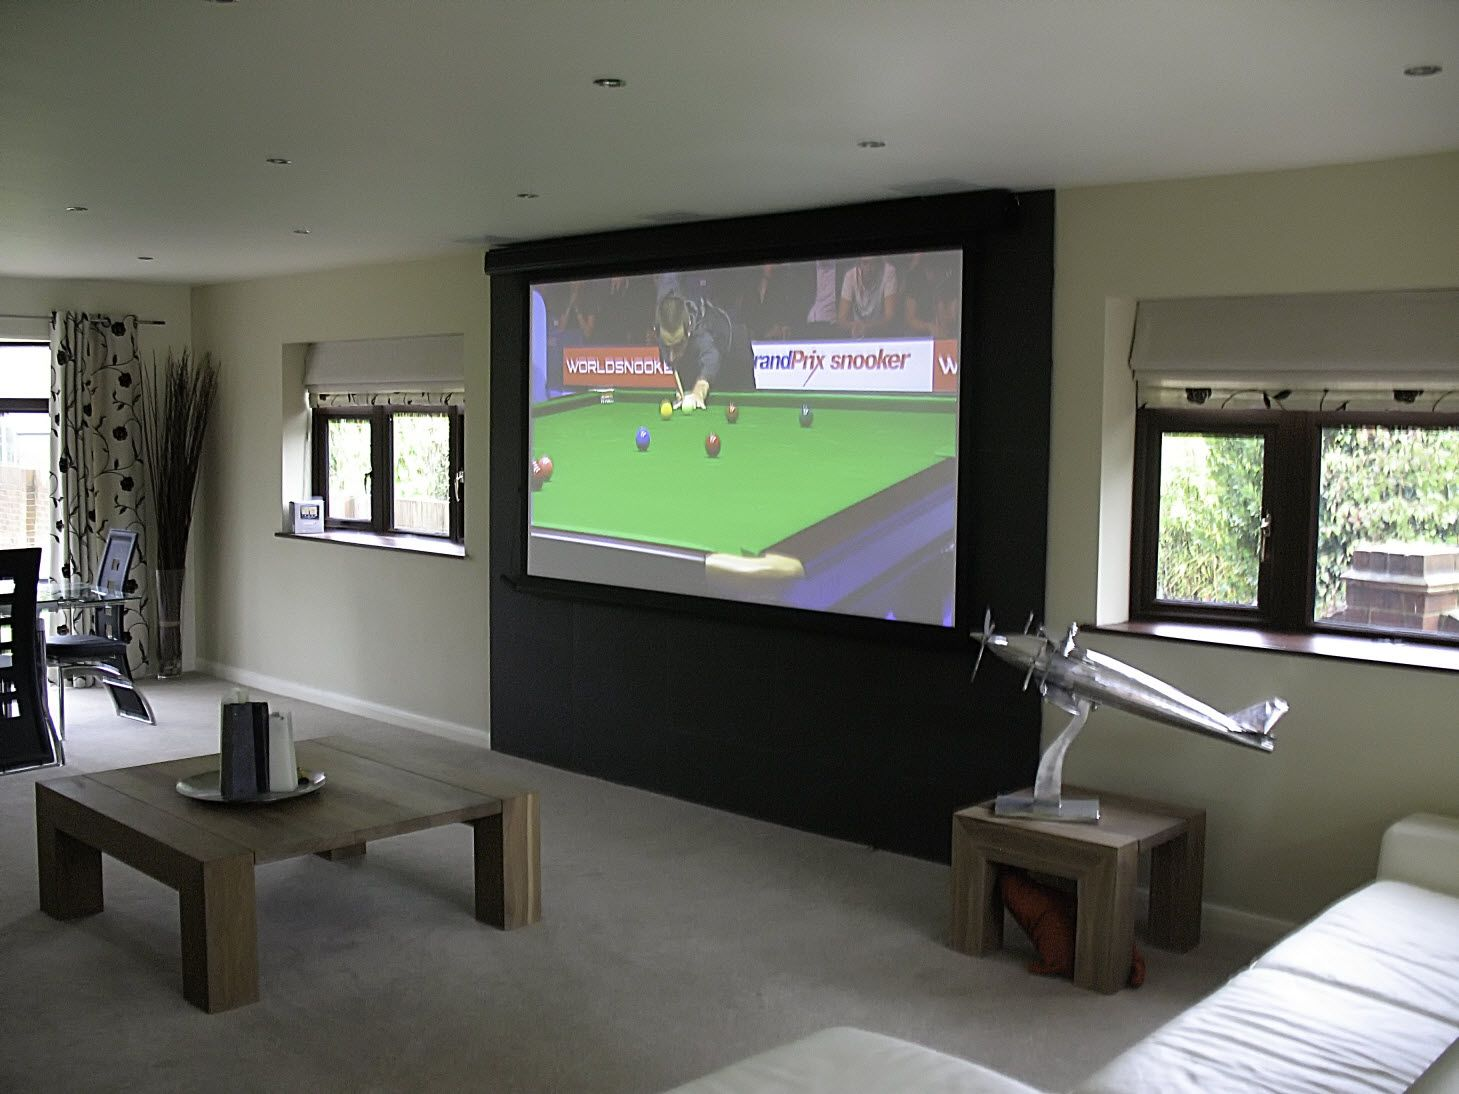 10608 M Tensioned Projection Screen In Home Cinema (1459×1094)